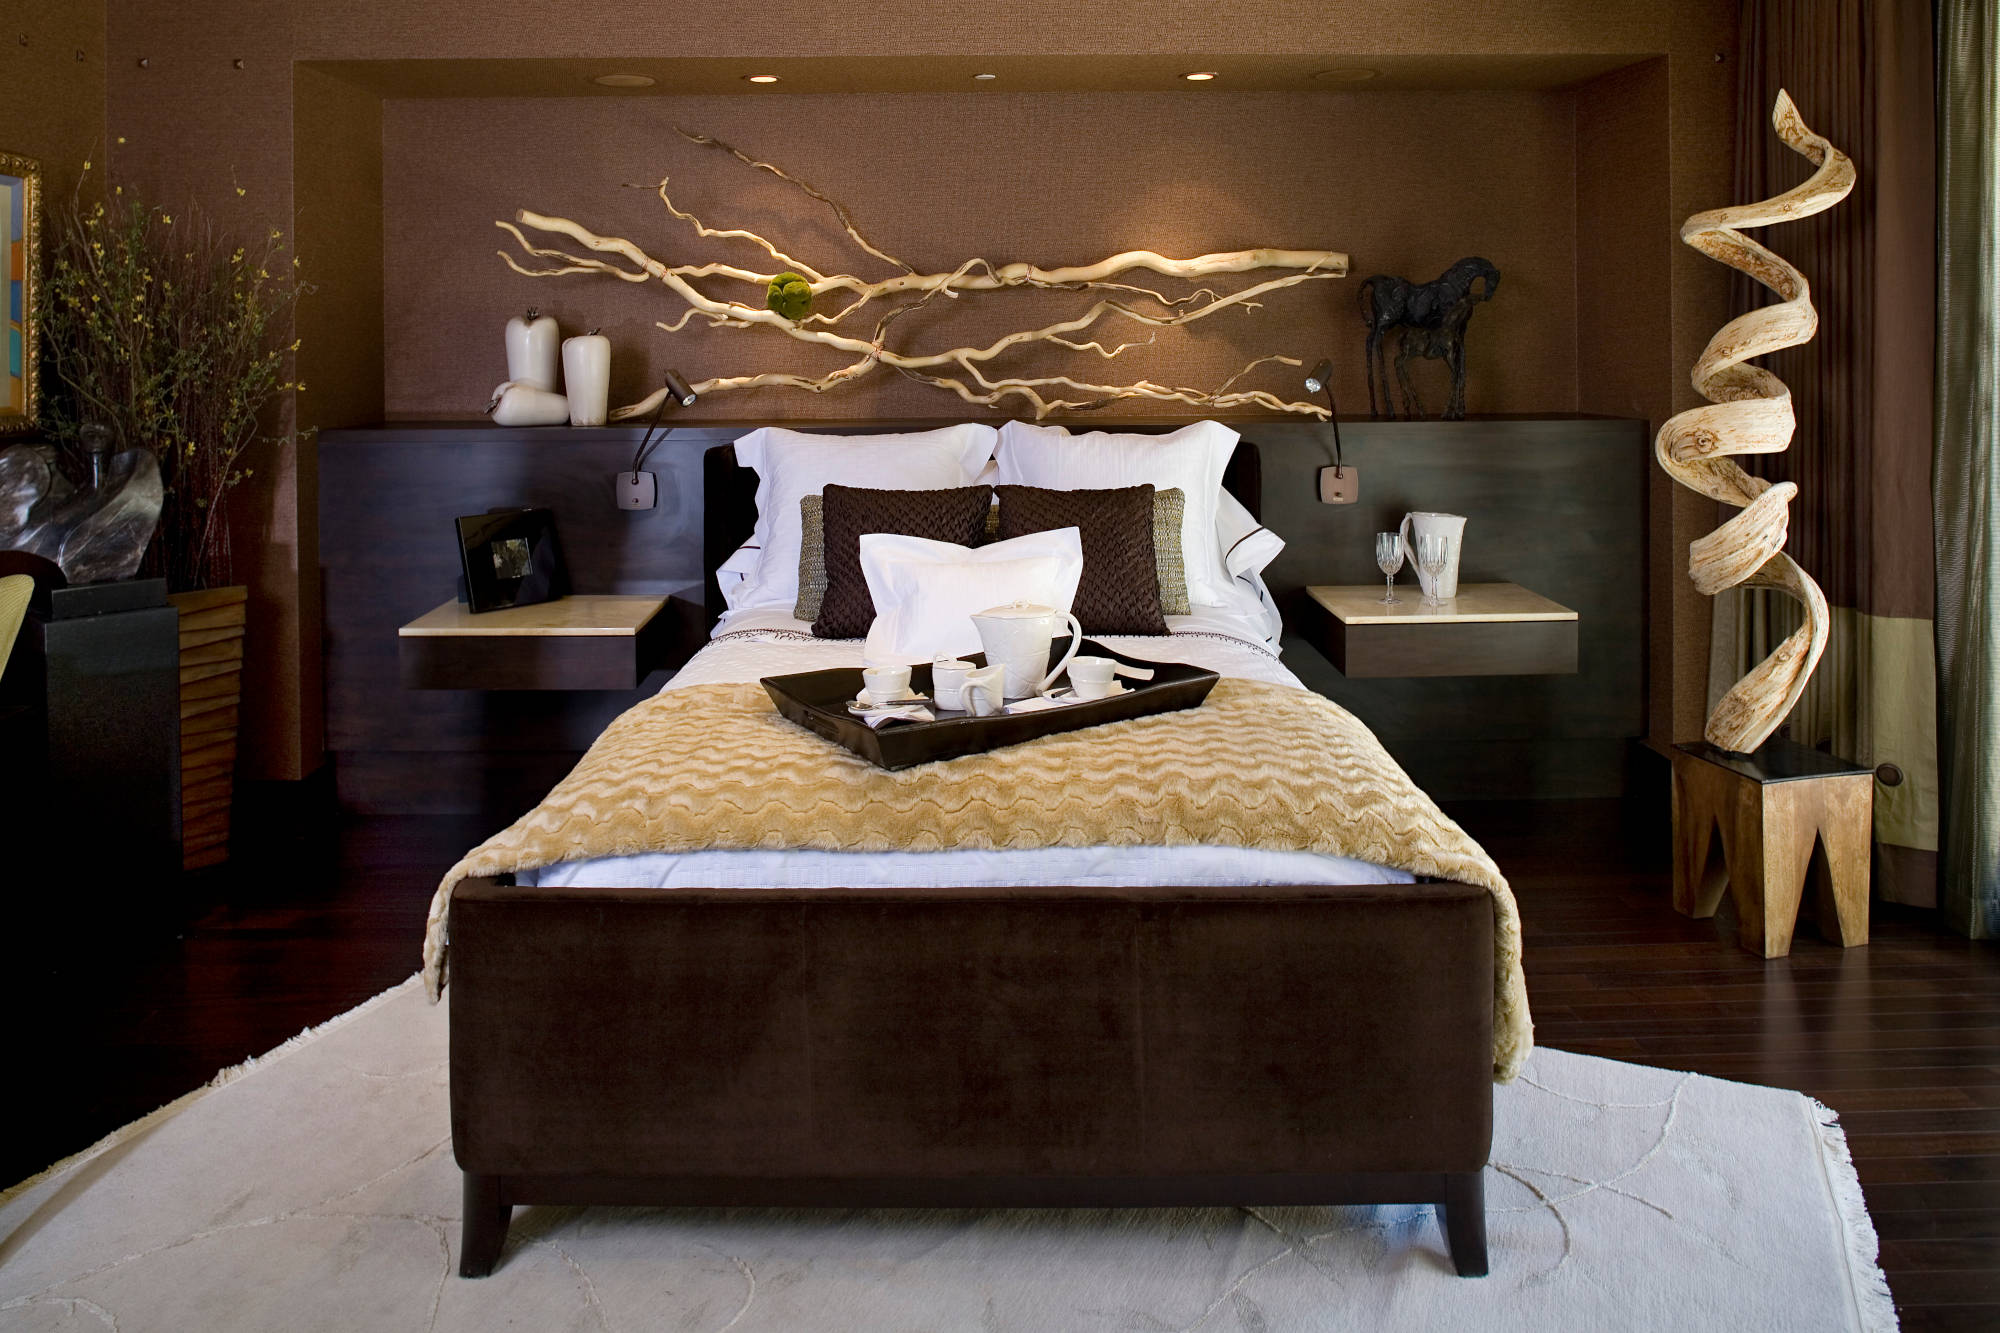 Contemporary bedroom with grass cloth wallpaper, organic wood sculpture and floating nightstands.